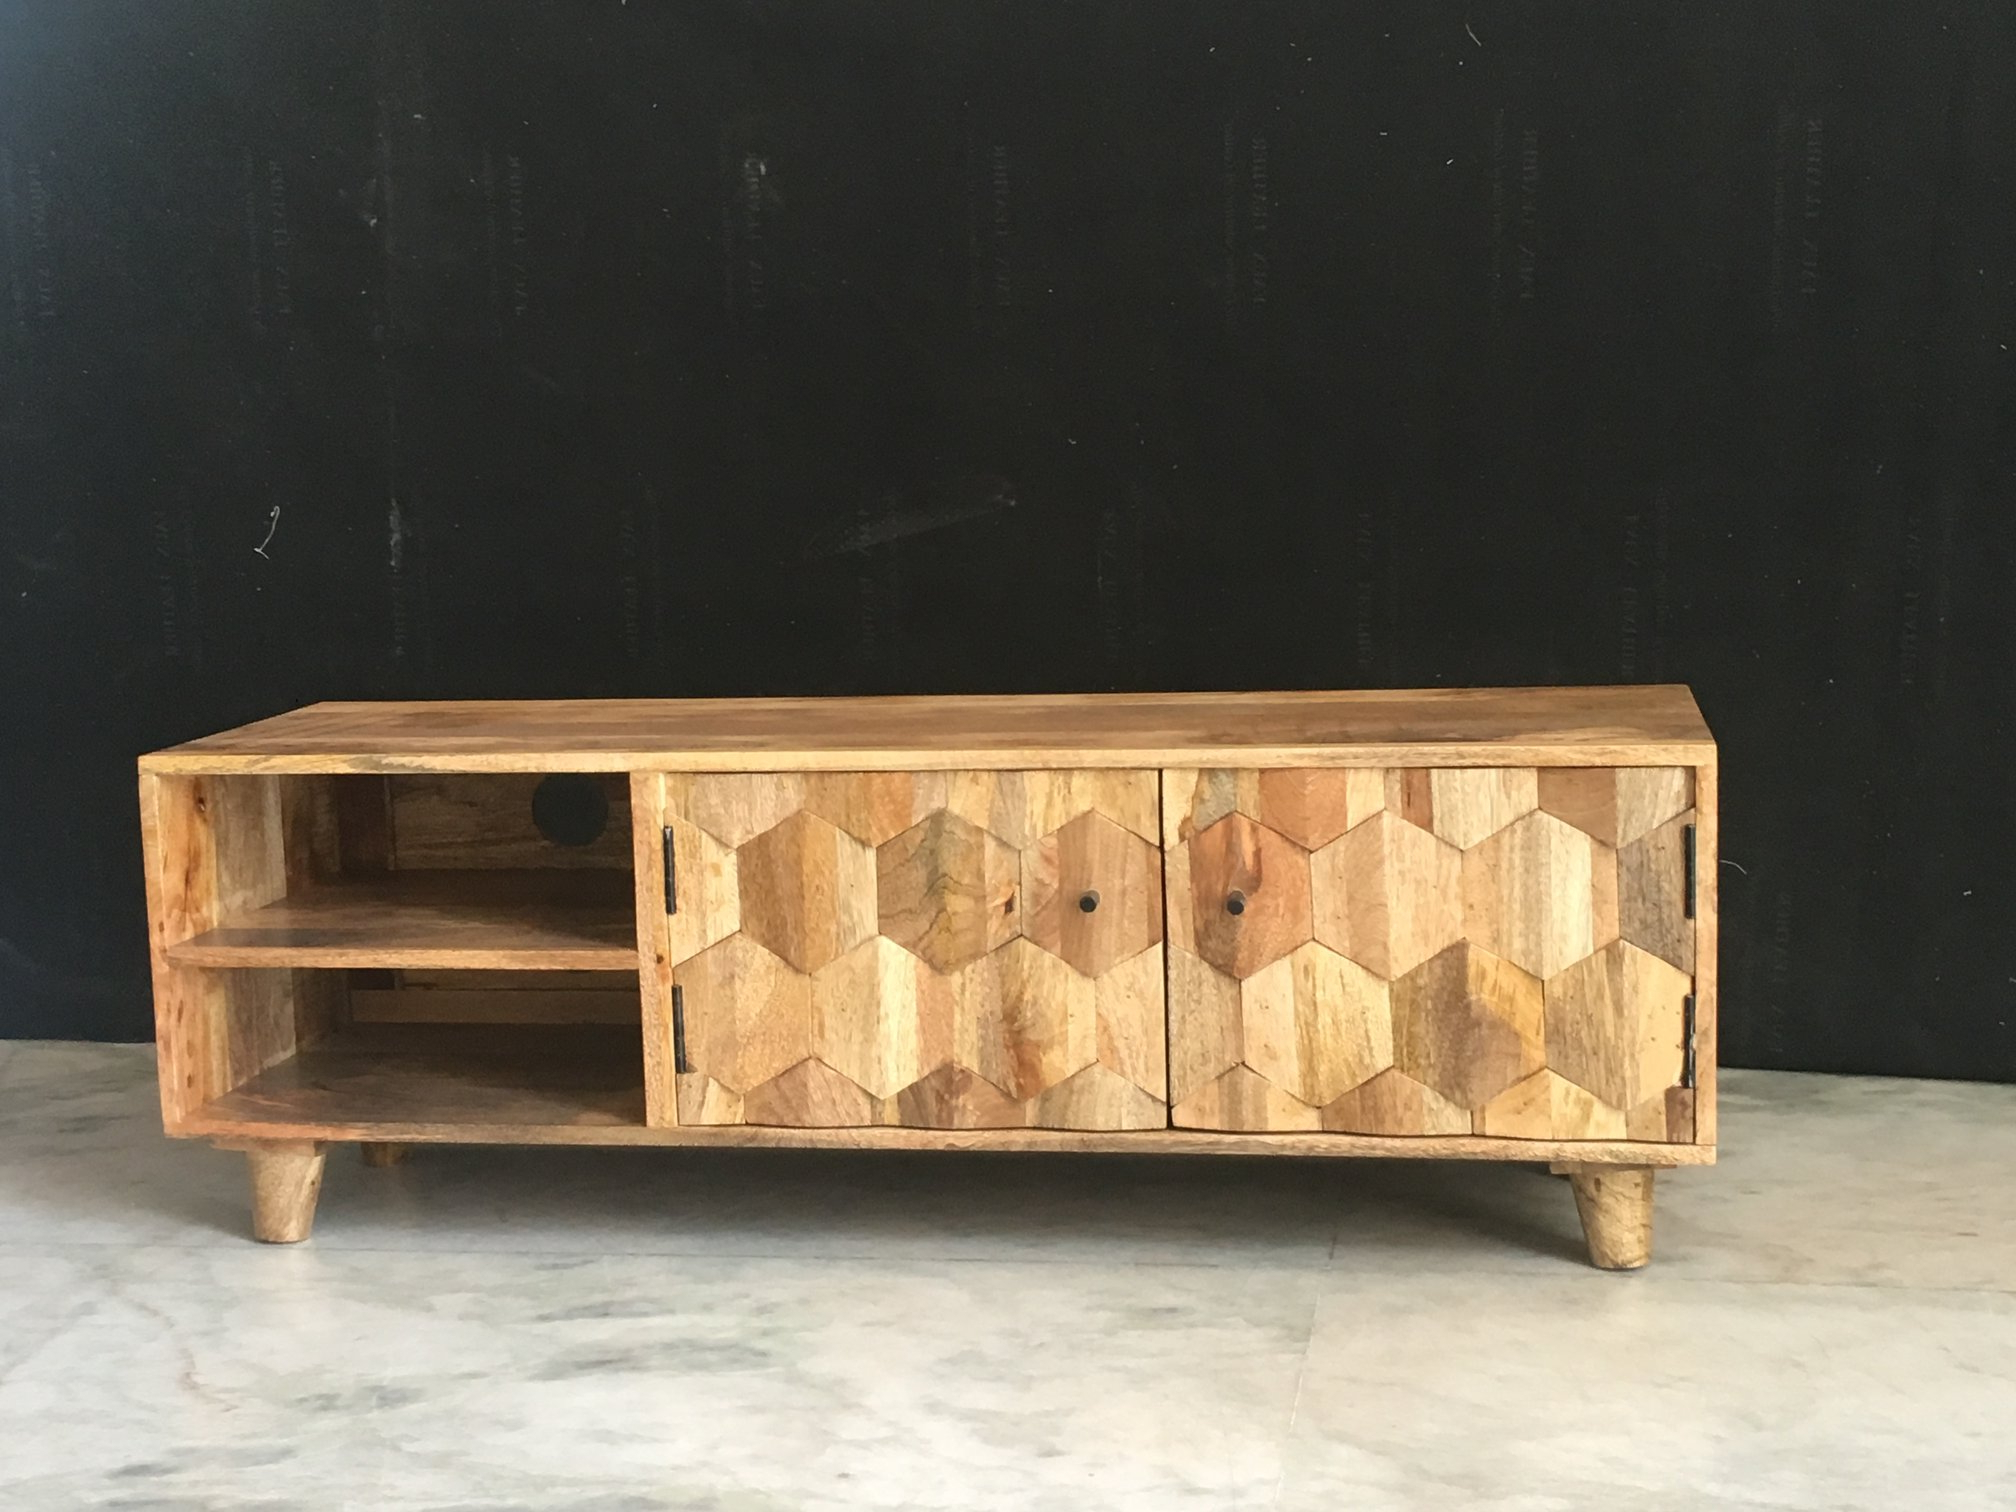 Light Mango Wood Tv Stand / Media Unit With Hexagonal Patterns In Widely Used Mango Wood Tv Cabinets (View 13 of 20)